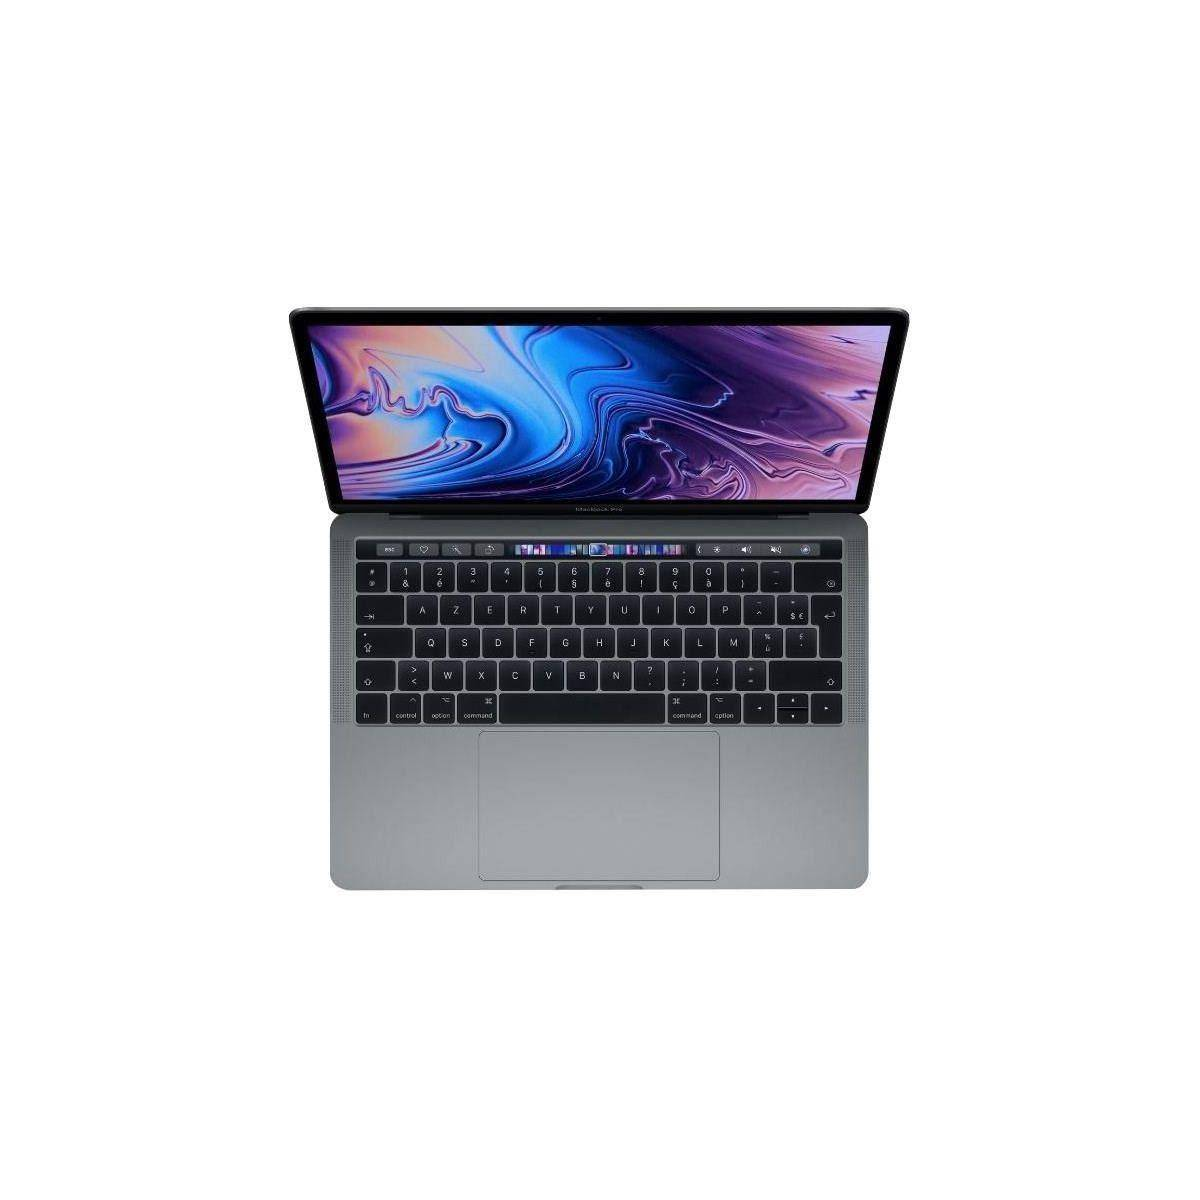 APPLE MacBook Pro MR9R2FN/A - 13,3 pouces Retina avec Touch Bar - Intel Core i5 - RAM 8Go - Stockage 512Go - Gris Sideral